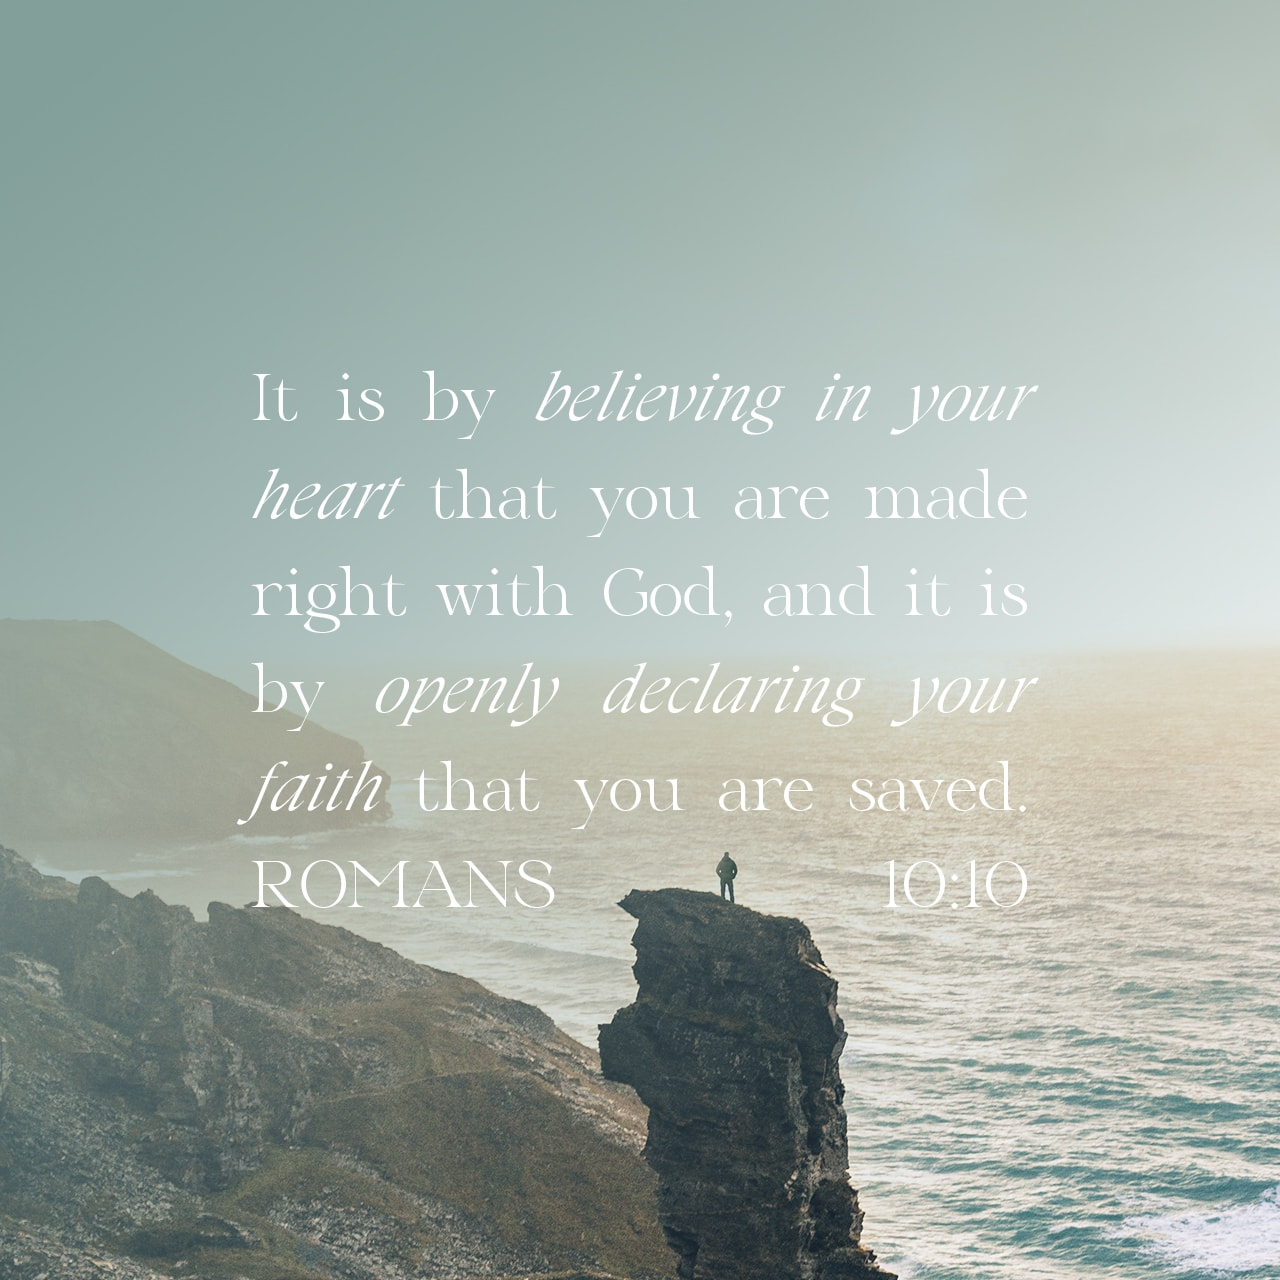 It is by believing in your heart that you are made right with God, and it is by openly declaring your faith that you are saved. - ROMANS 10:10 - Verse Image